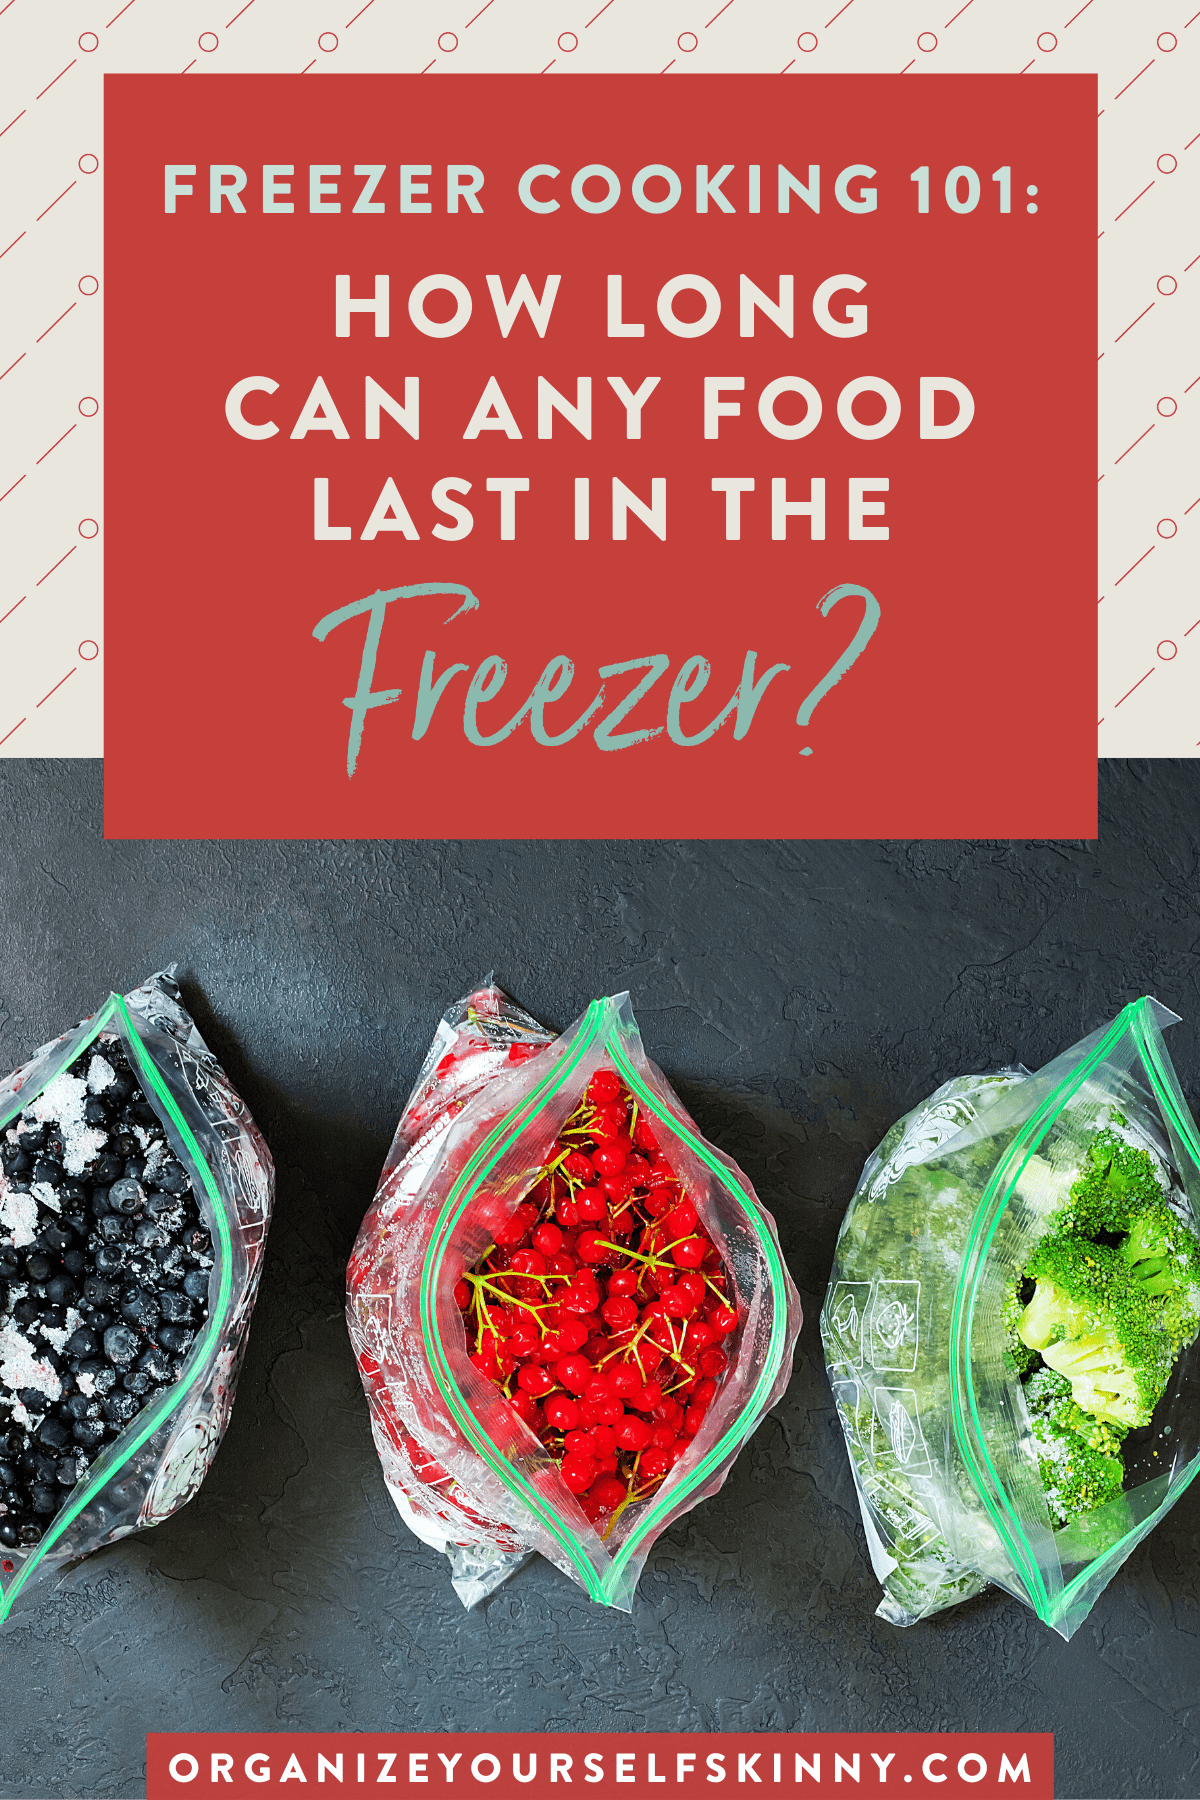 freezer-cooking-time-in-freezer-food-to-freeze